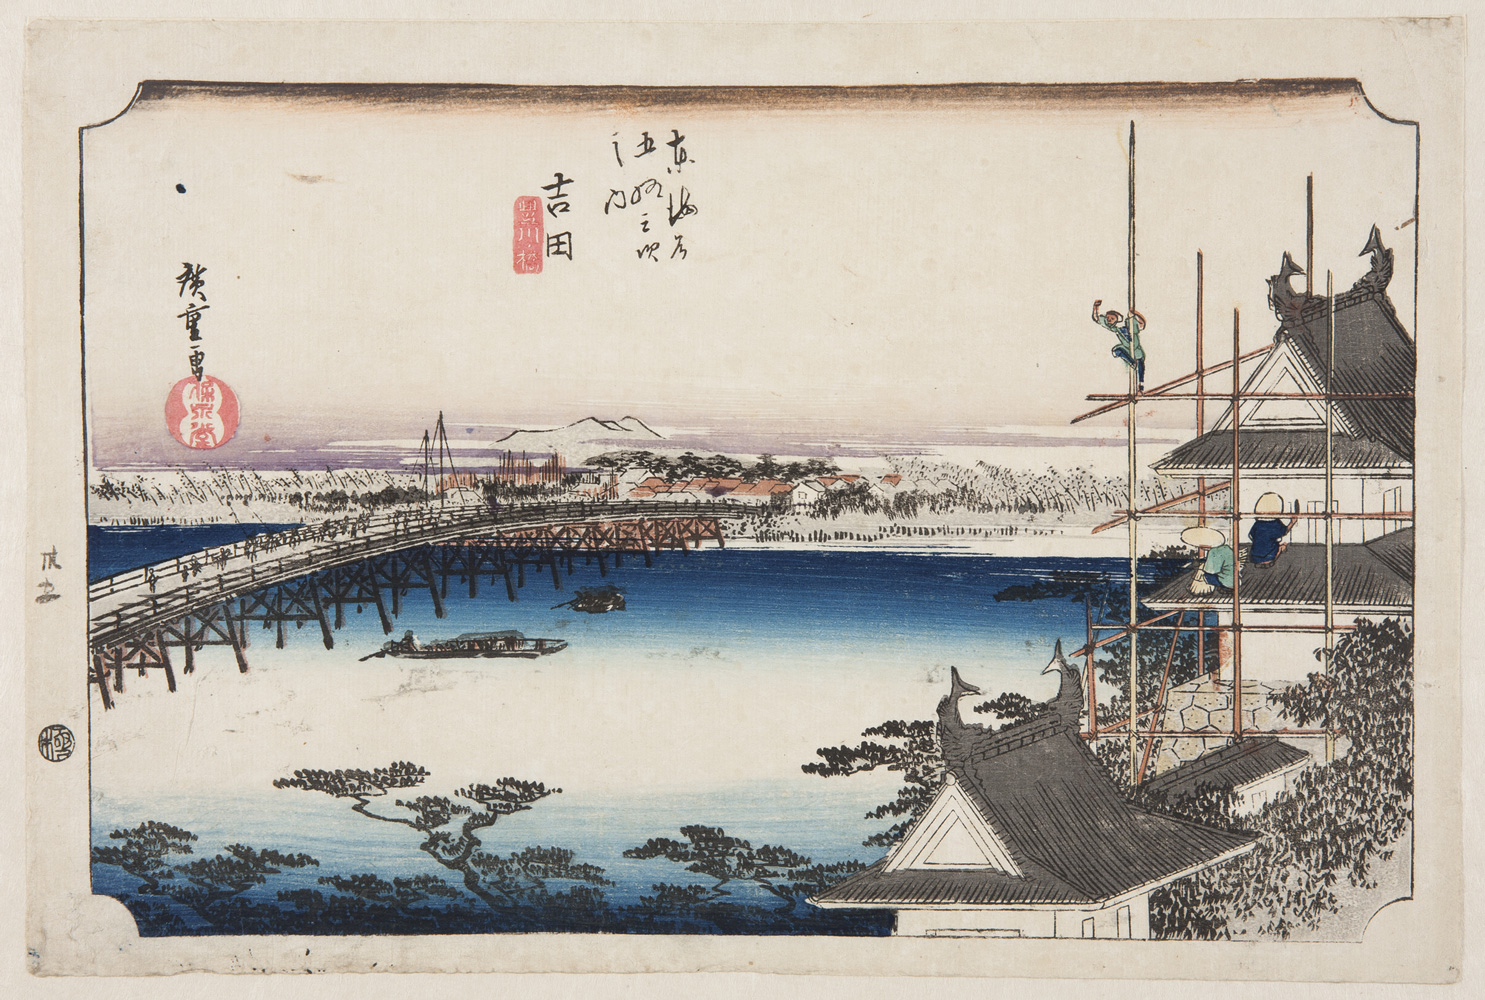 Japanese print of a landscape. To the right a scaffold surrounds a building. One worker looks out over the landscape, two others work on the roof. The landscape below shows a wide river, a bridge, a distant village and mountains.